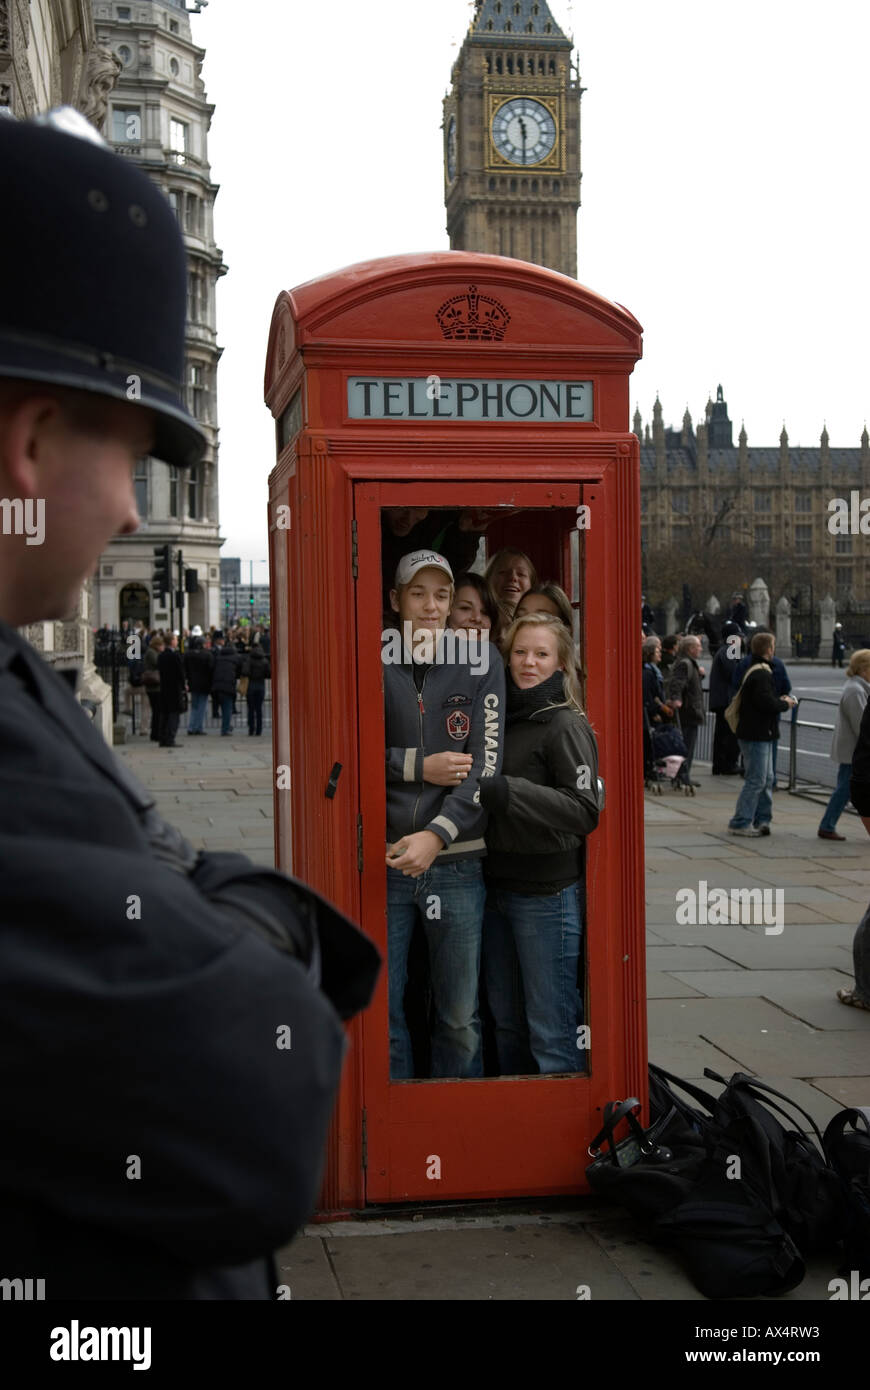 TELEPHONE BOX CANADIAN STUDENTS CRAM INTO A LONDON RED TELEPHONE BOX AT PARLIAMENT SQUARE LONDON ENGLAND - Stock Image